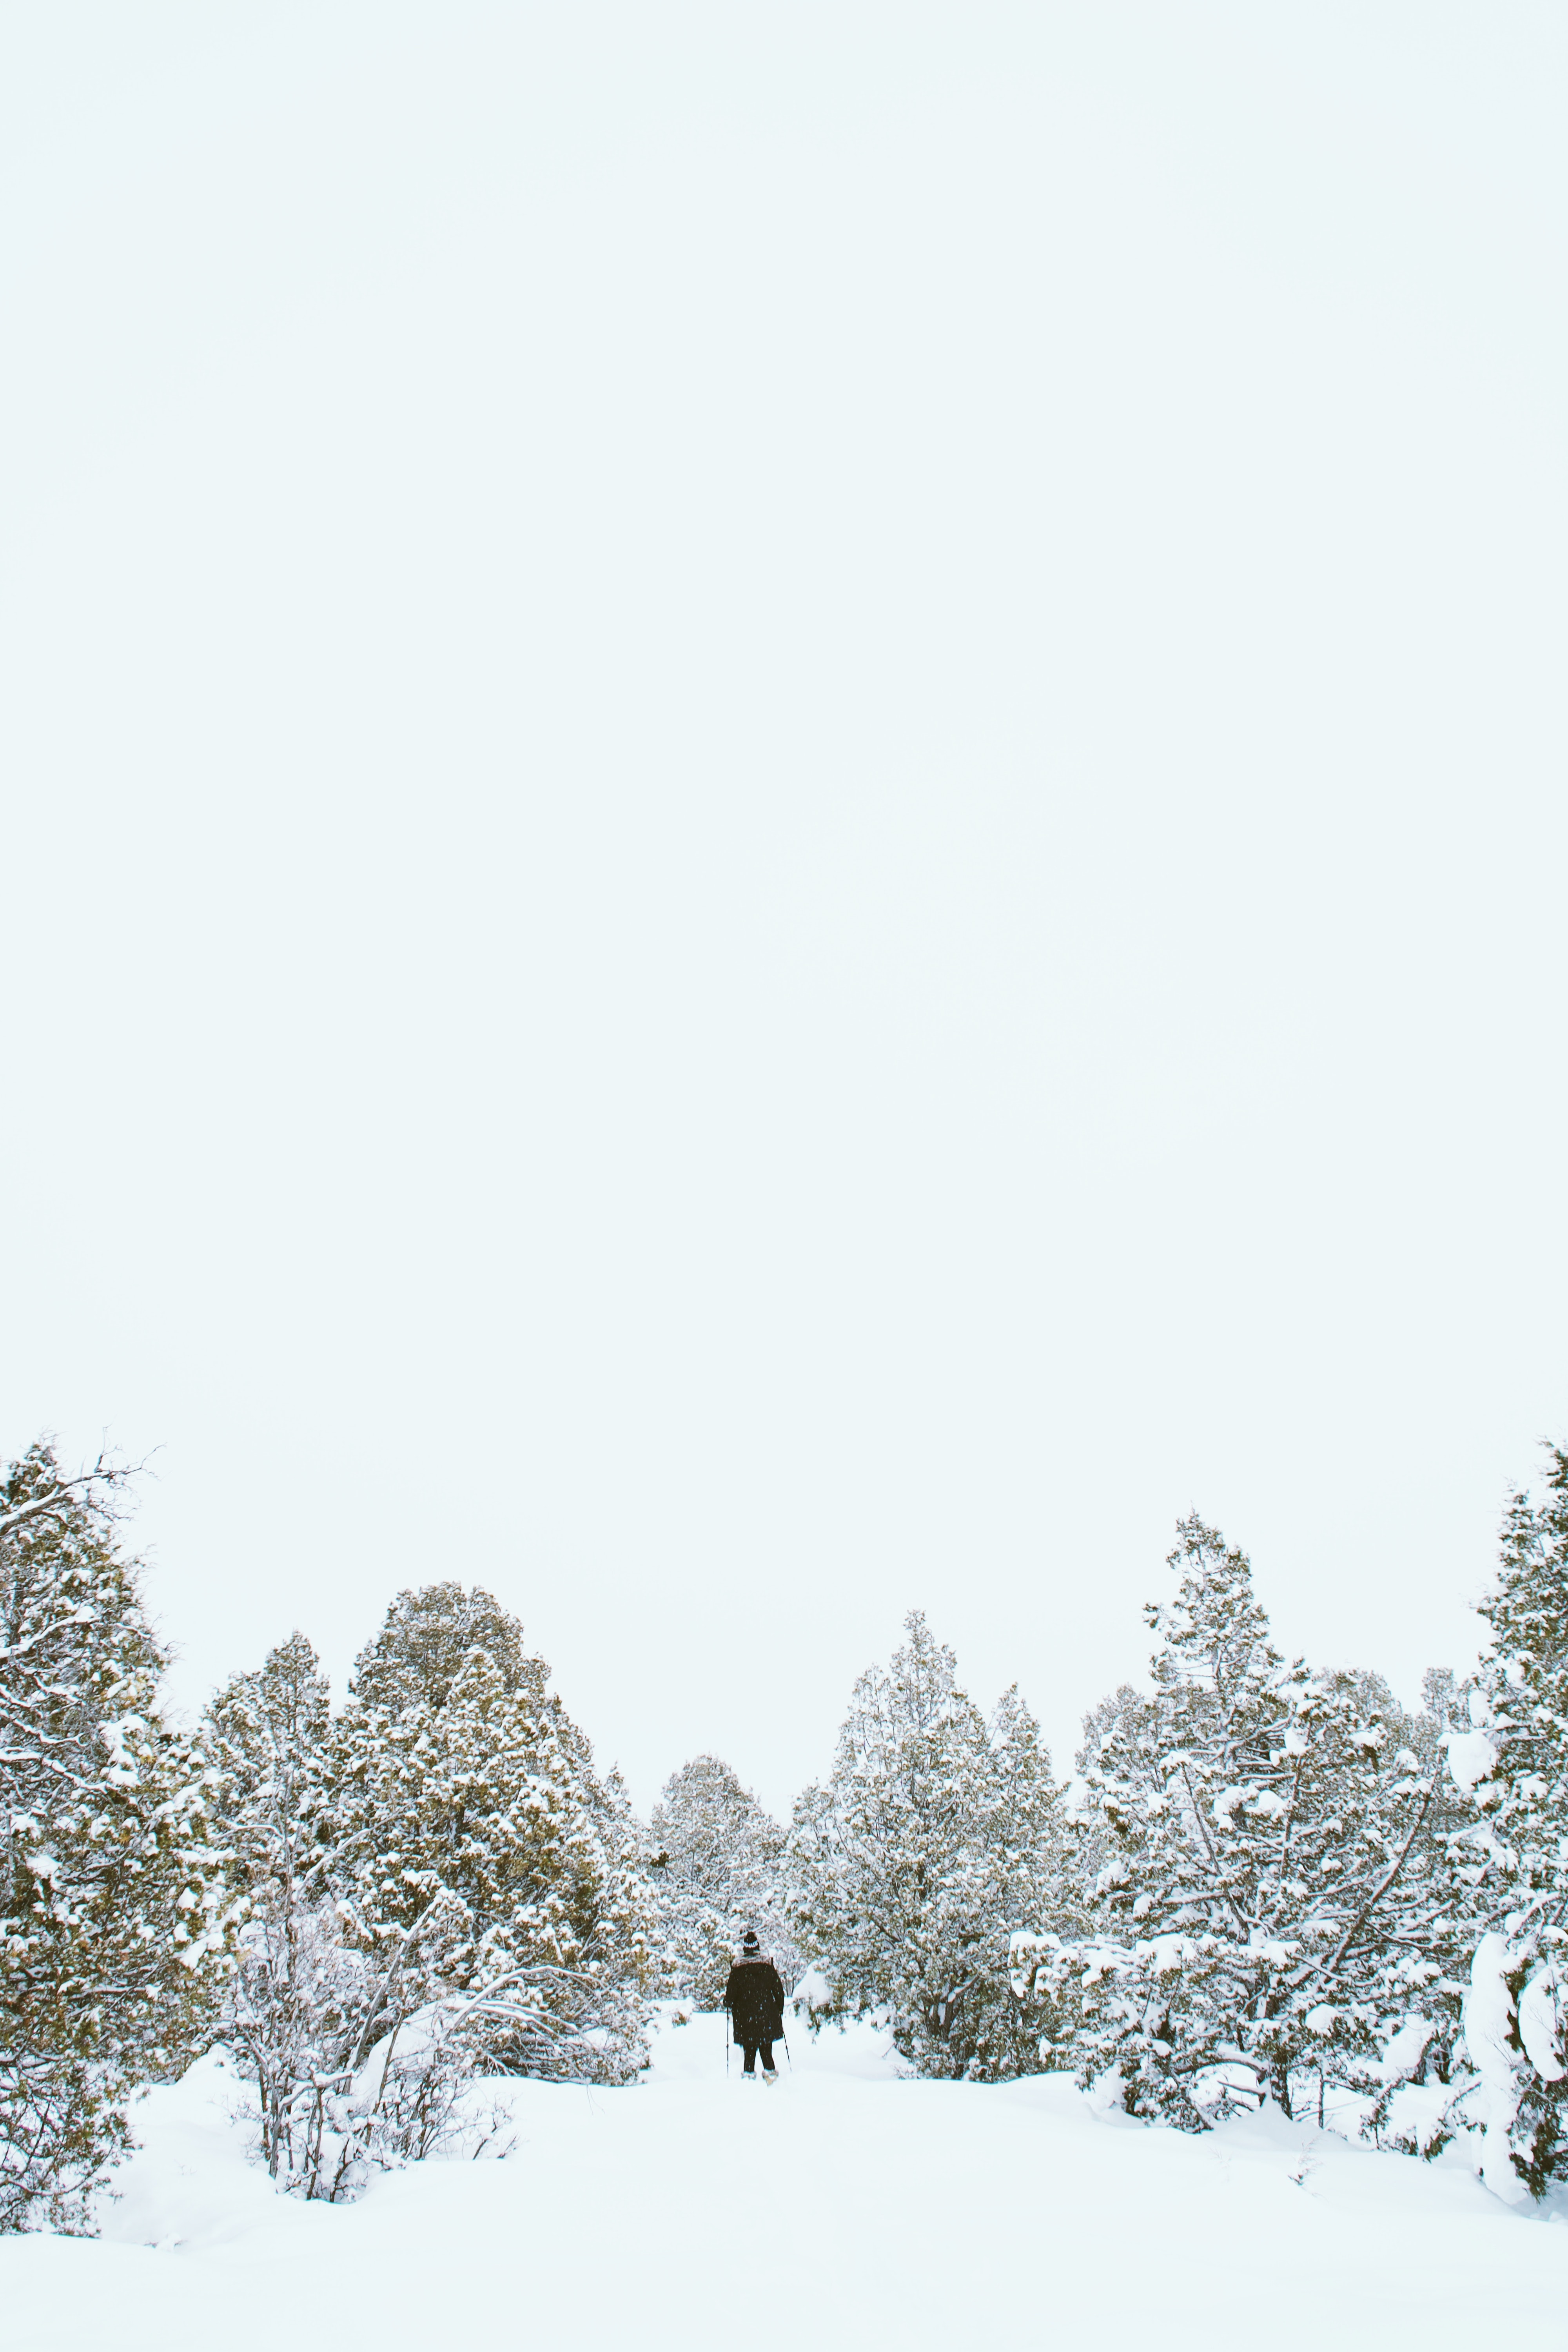 A person walking on snow among small trees in Summit County